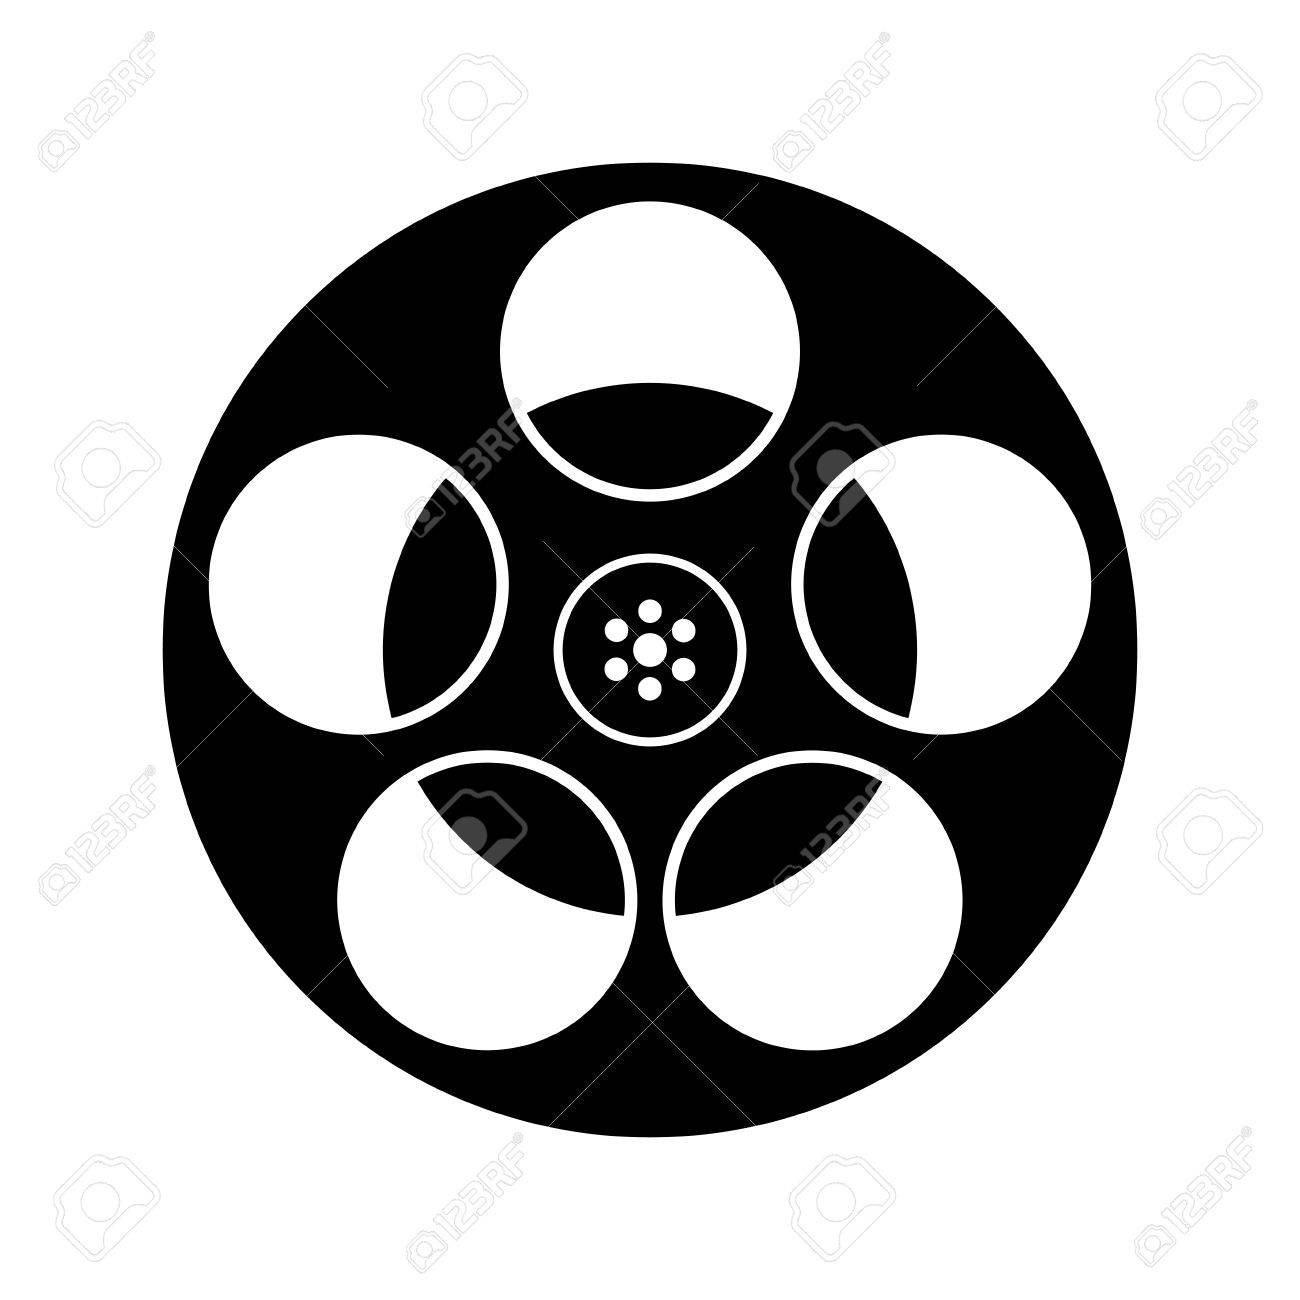 Black And White Film Reel Icon Isolated Royalty Free Cliparts